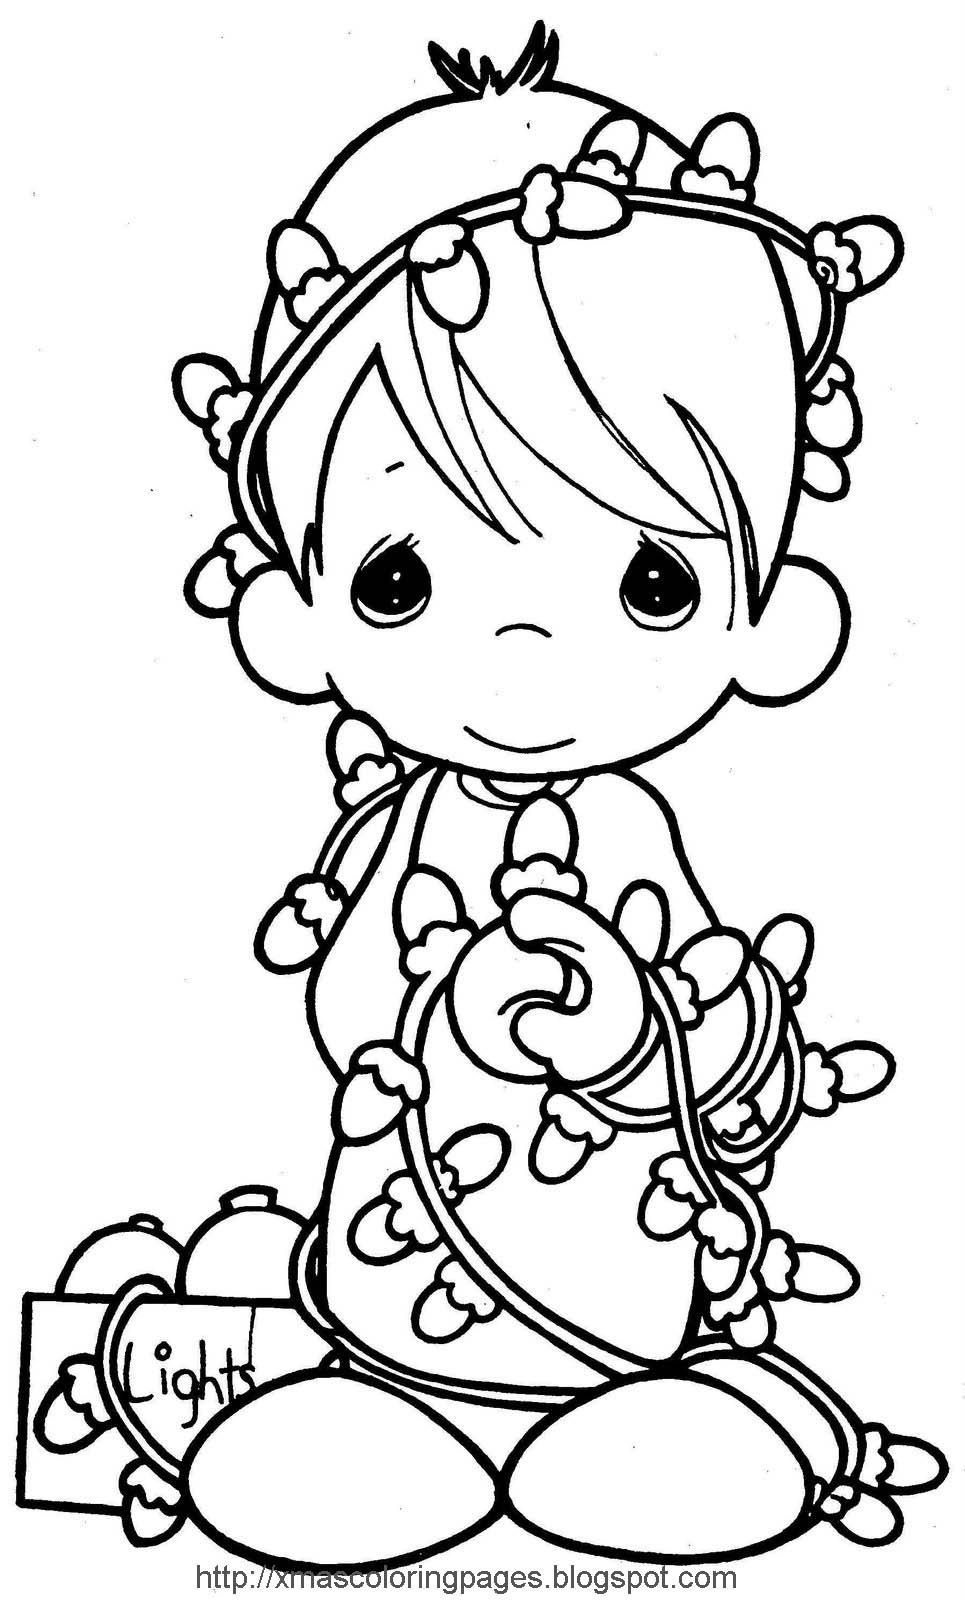 XMAS COLORING PAGES: ANGEL COLORING PAGE | precious moments ...